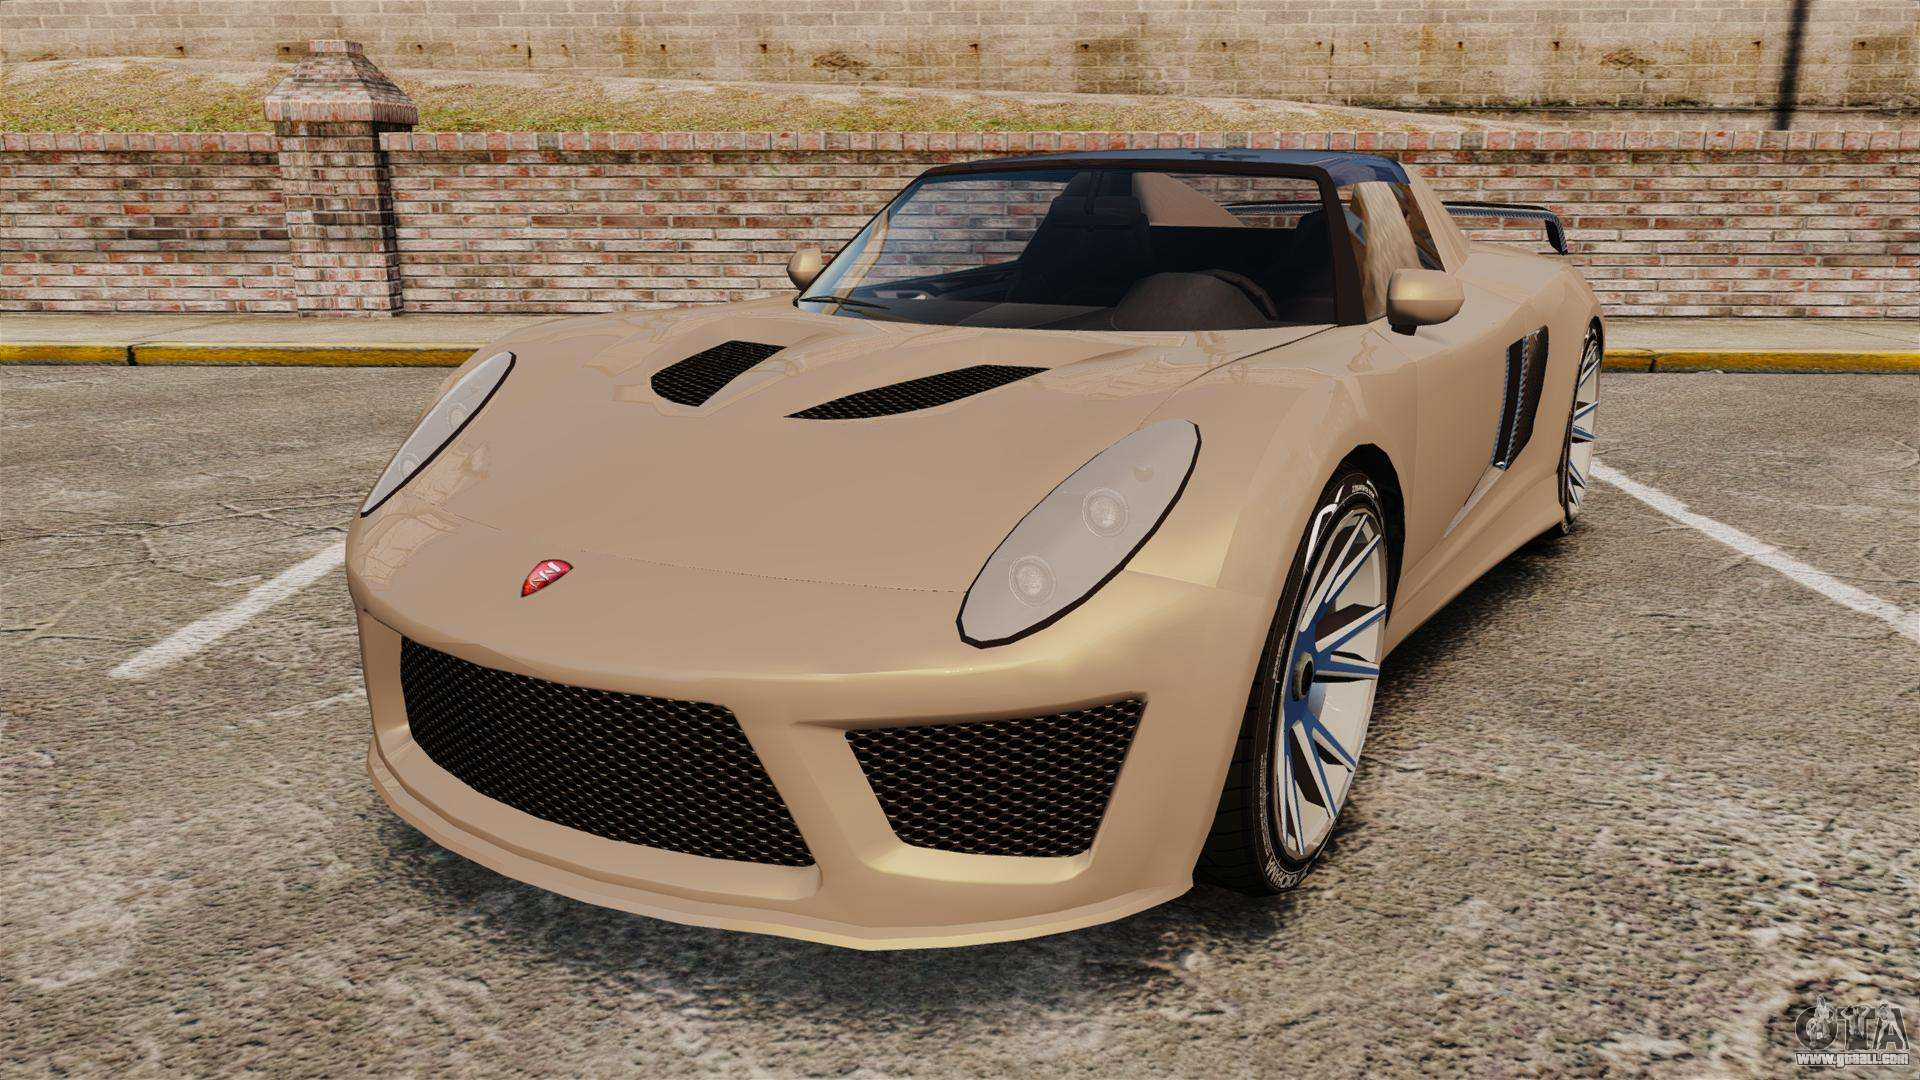 10 Car Selfies We Decided To Snap In Gta V besides Gta 5 Coil Voltic Location further The Best And Fastest Car In Gta 5 Coil Voltic Pegassi Infernus And Grotti Cheetah besides Seven 70 together with 38620 Gta V Coil Voltic. on gta v voltic gt